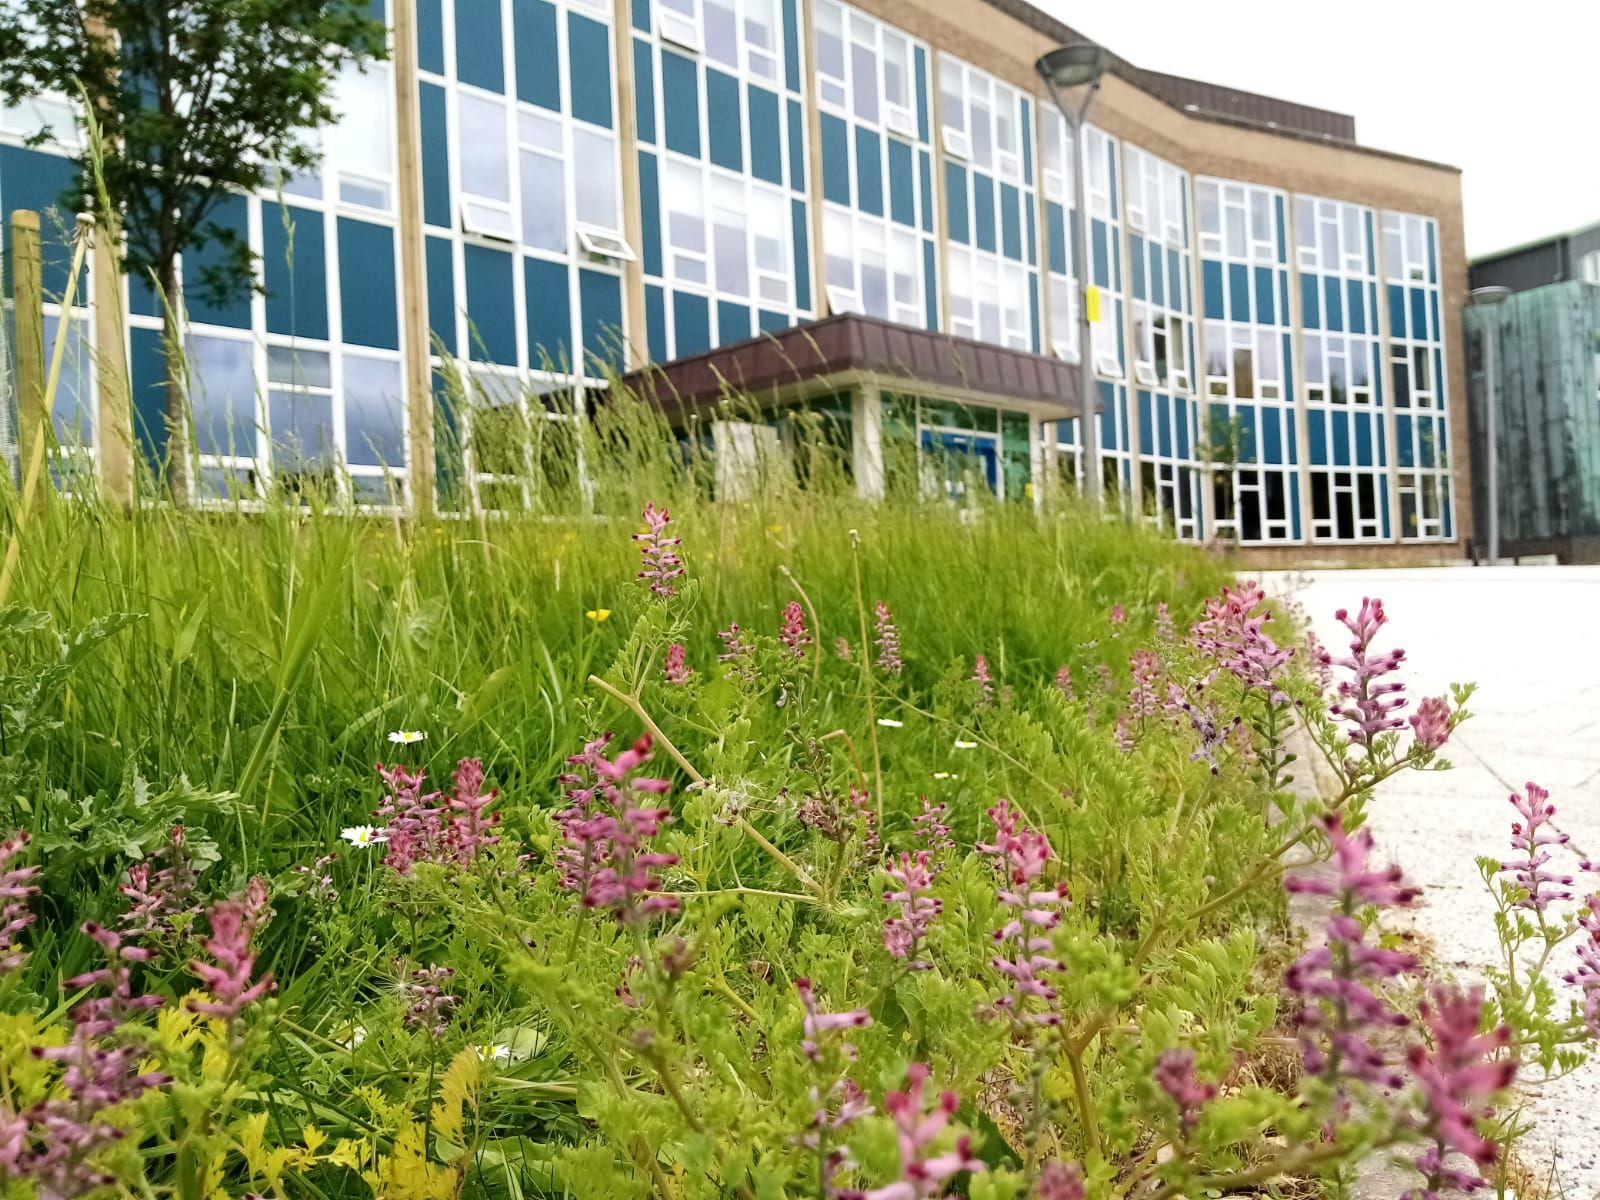 Rochester building with Wildflower meadow in front